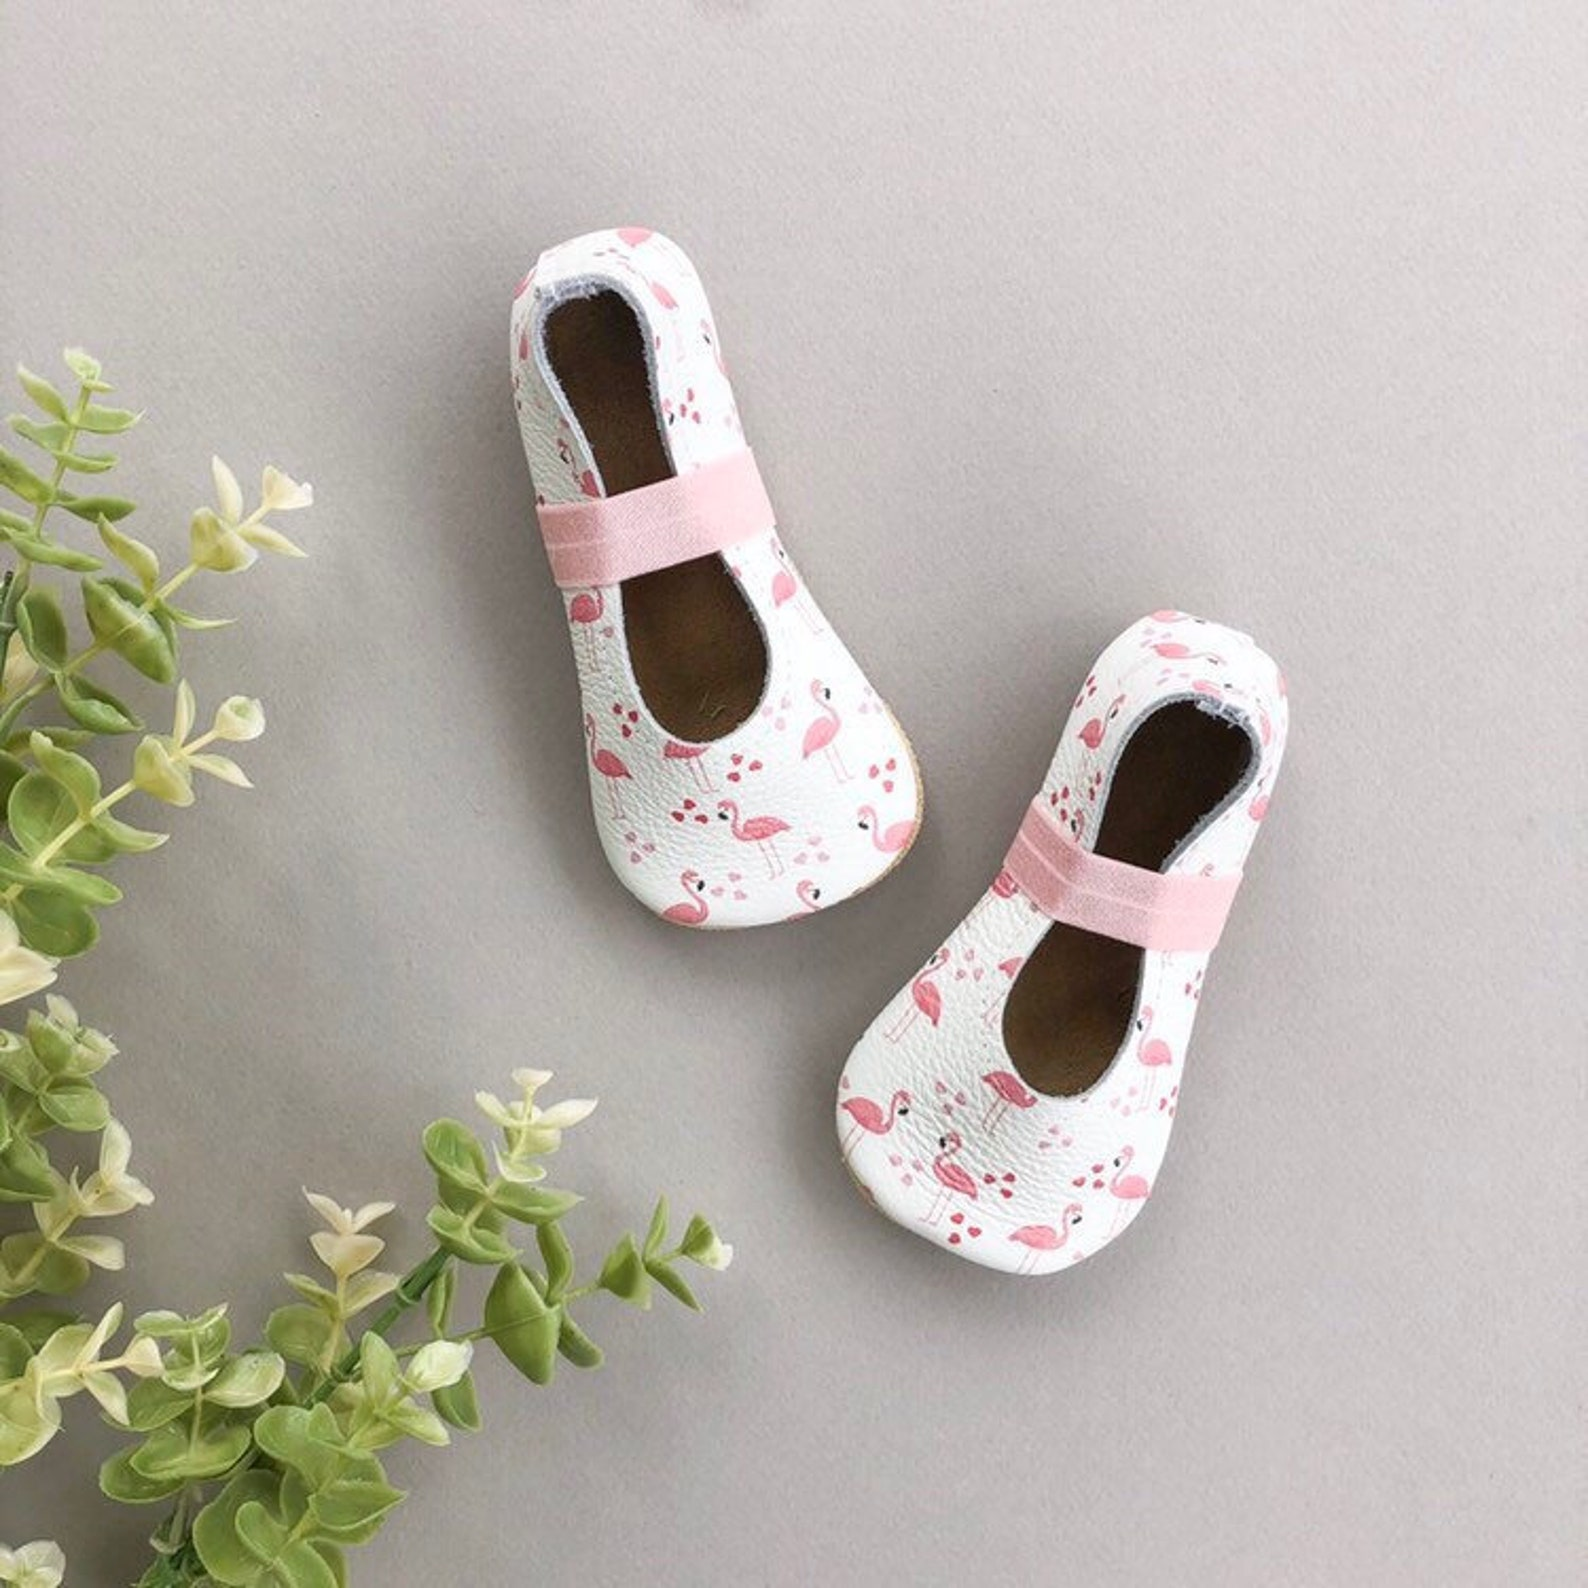 flamingo ballet flats - pink baby moccasins - genuine leather toddler shoes - spring baby outfit